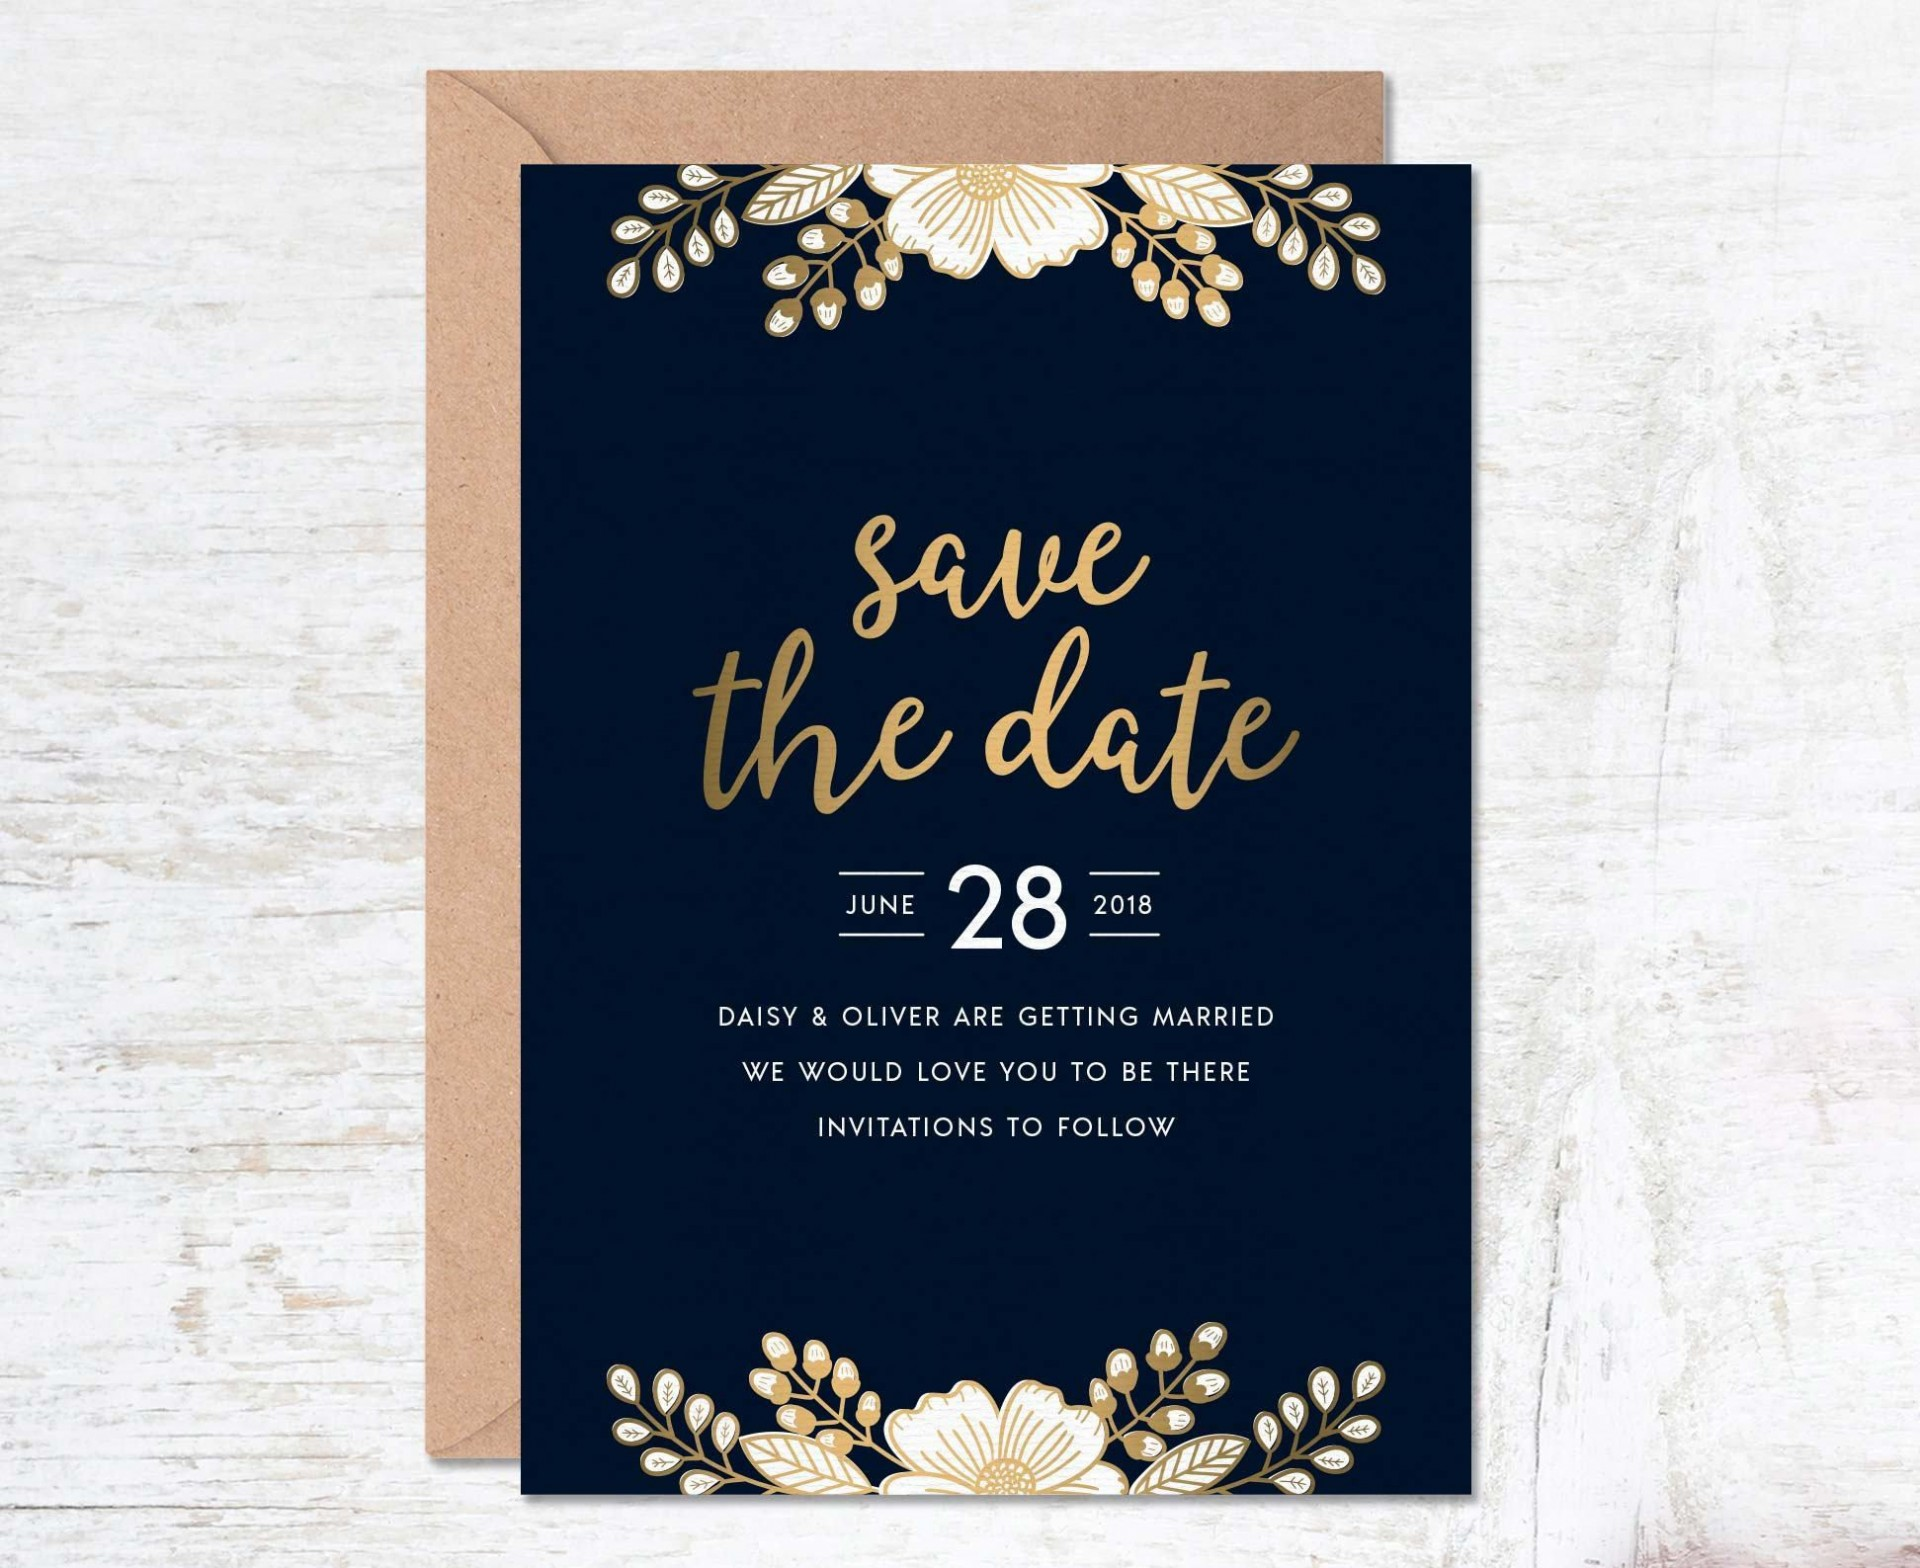 000 Unusual Free Save The Date Birthday Postcard Template Photo  Templates1920